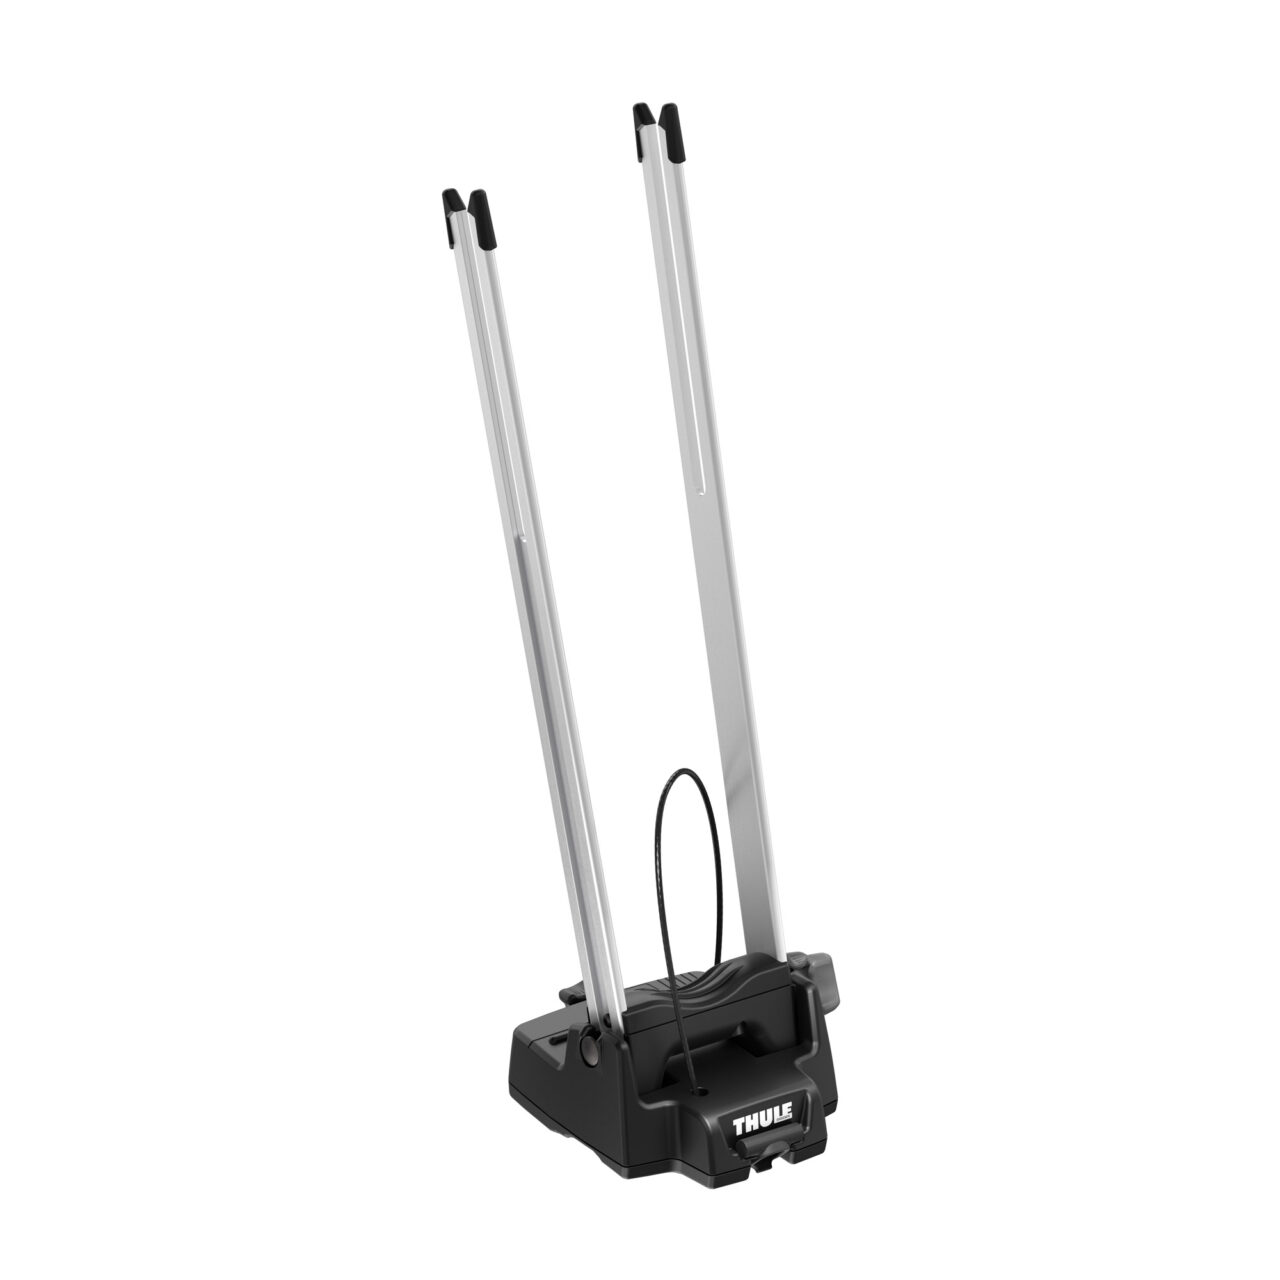 Thule Front Wheel Holder – compleet